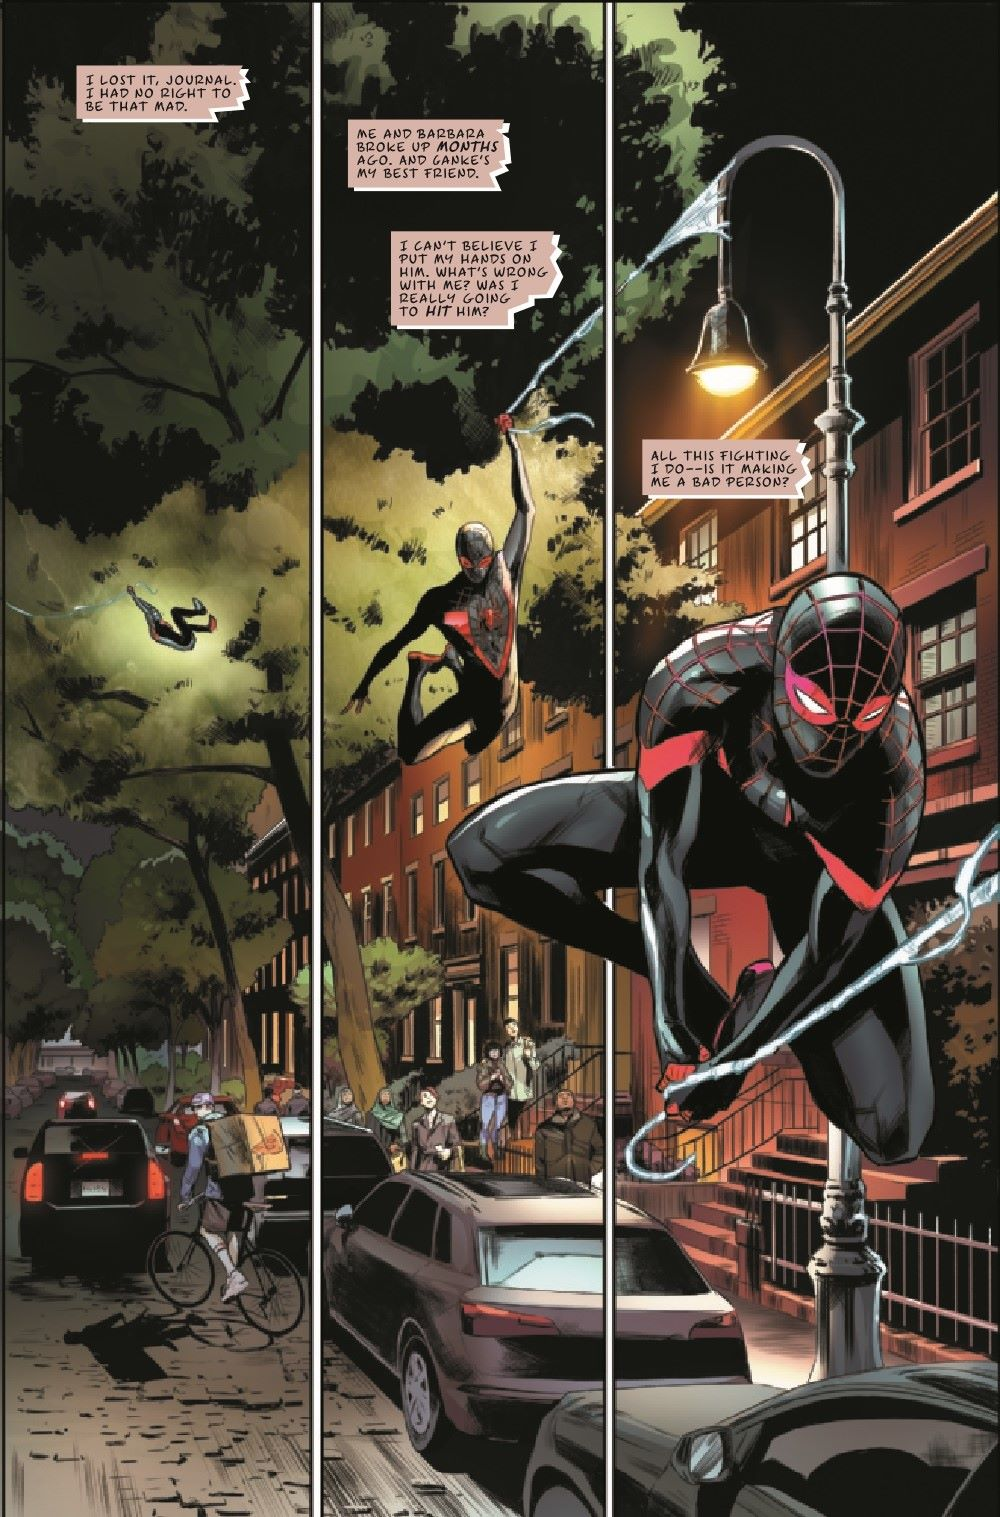 MMSM2018025_Preview-4 ComicList Previews: MILES MORALES SPIDER-MAN #25